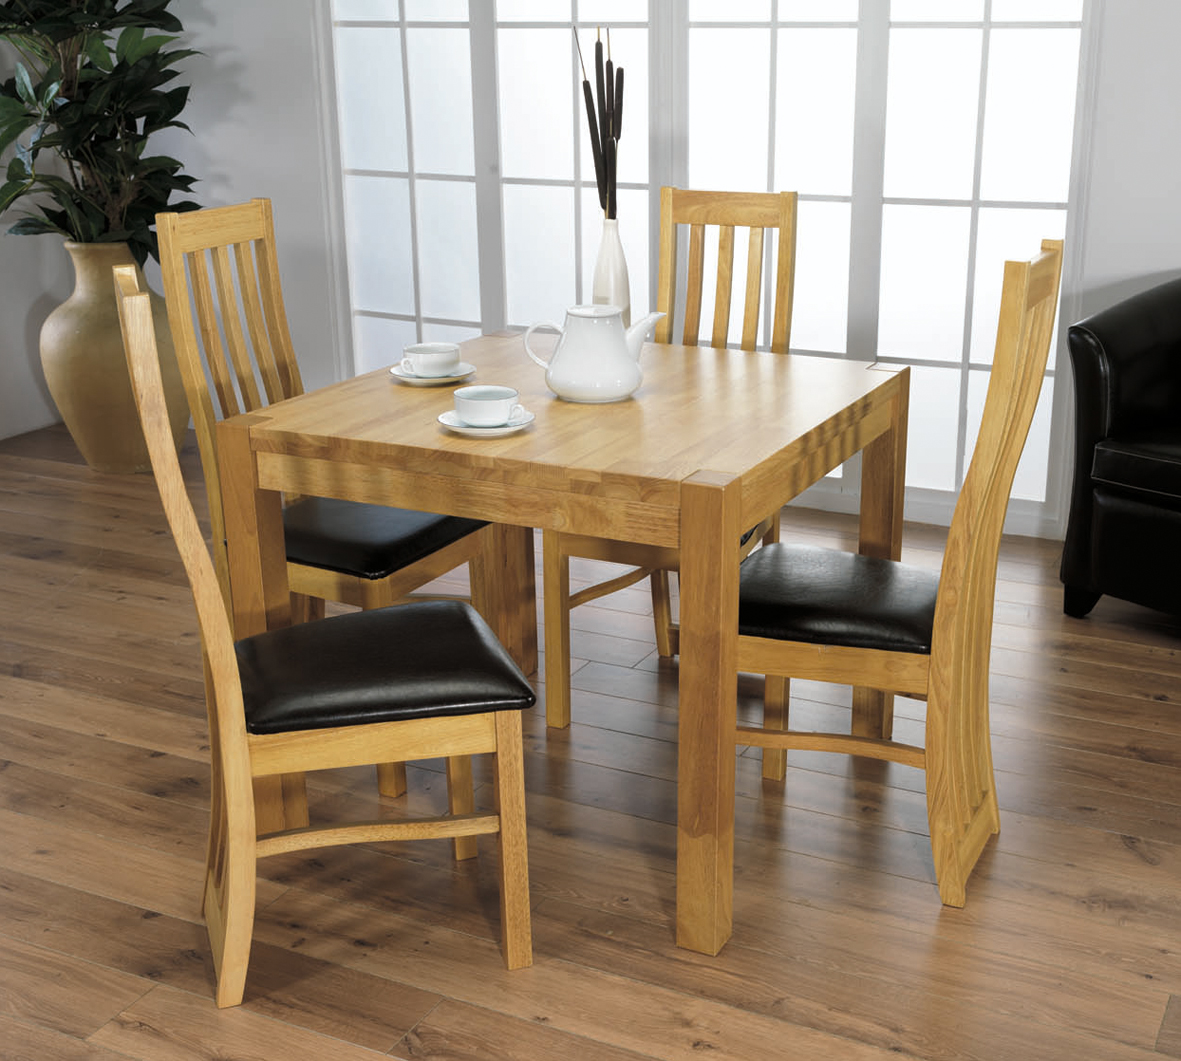 Compact kitchen table and chairs photo - 2 & Compact kitchen table and chairs | | Kitchen ideas